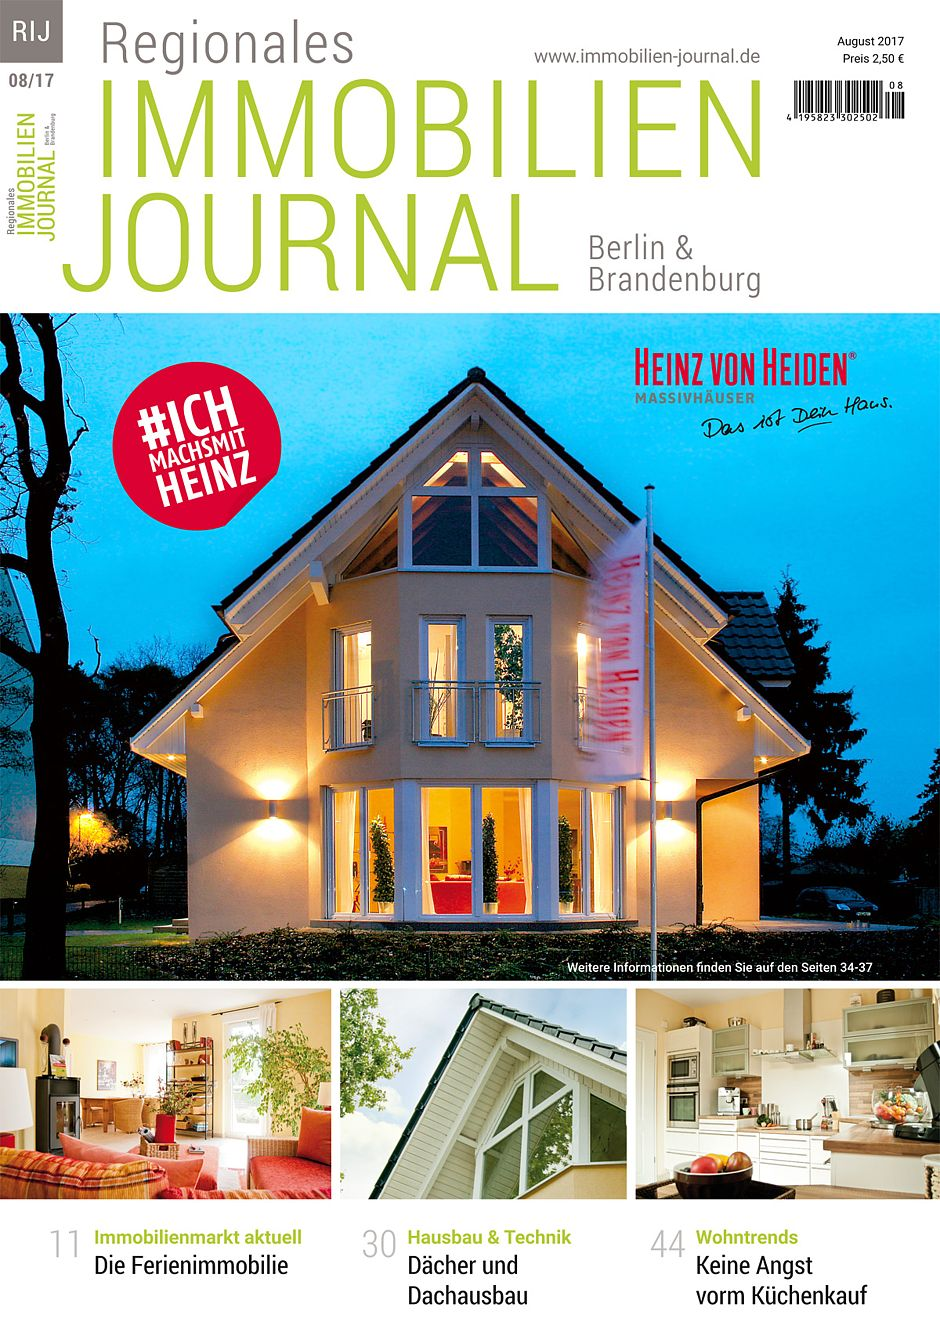 Regionales immobilien journal berlin brandenburg august for Hausbaufirmen brandenburg